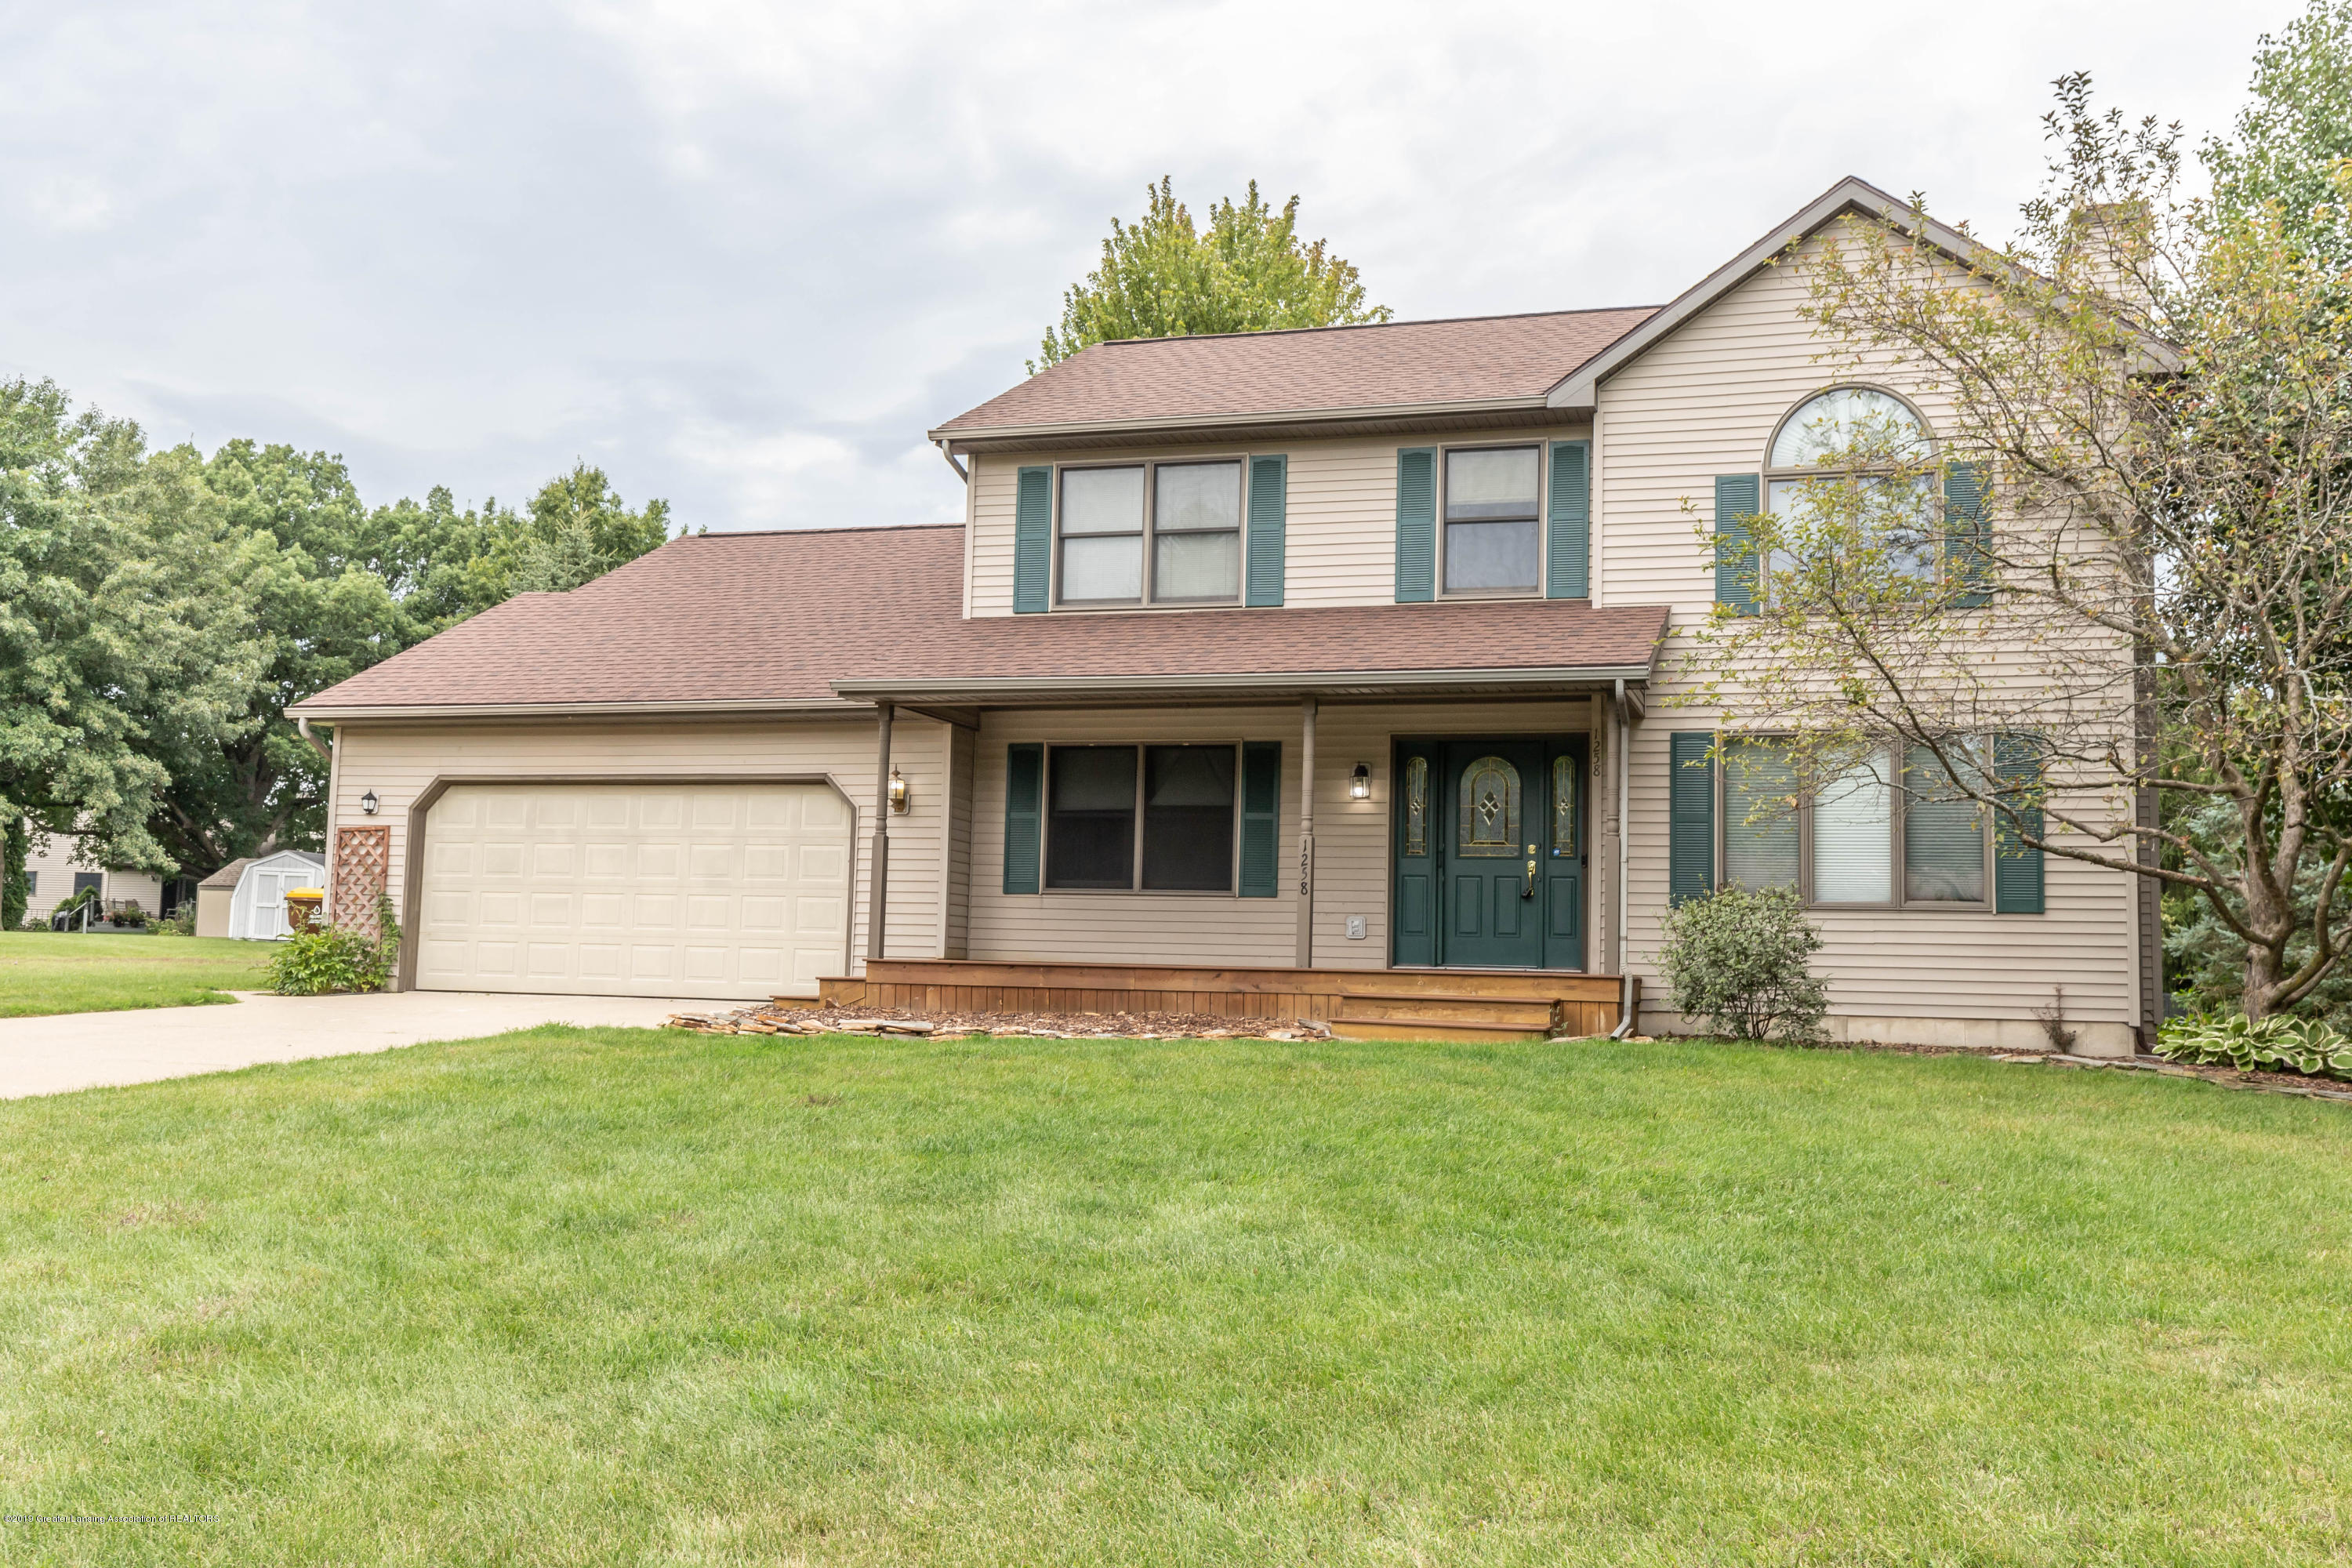 1258 Castlewood Cir - candlewoodfront2 (1 of 1) - 1